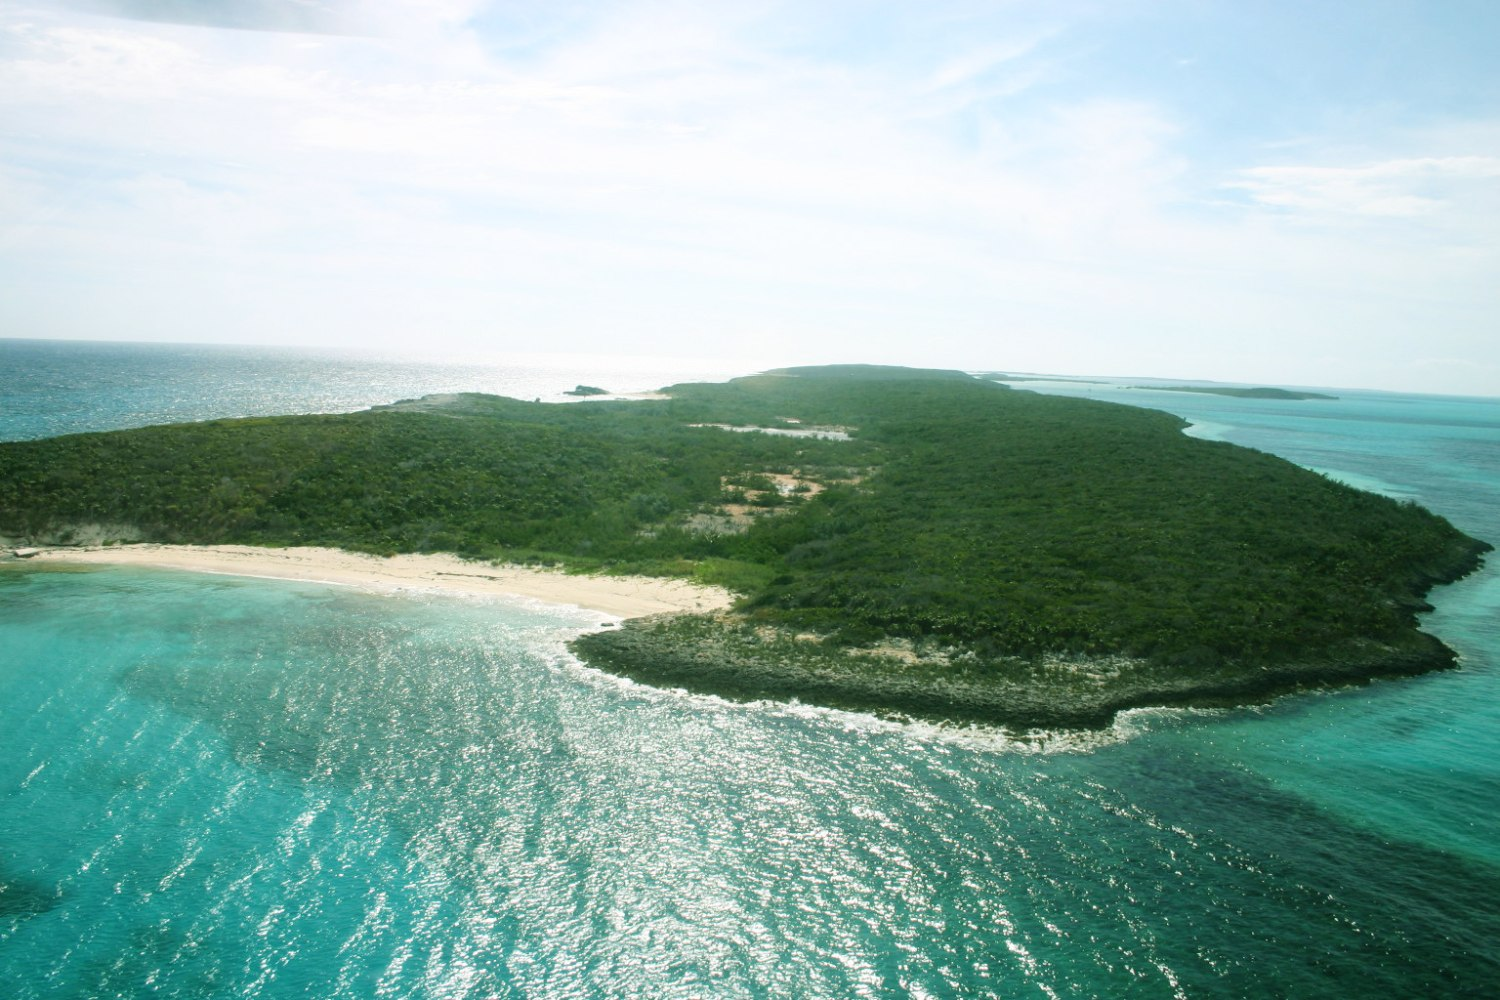 Private Islands for sale - Neptune's Nest - Bahamas ...